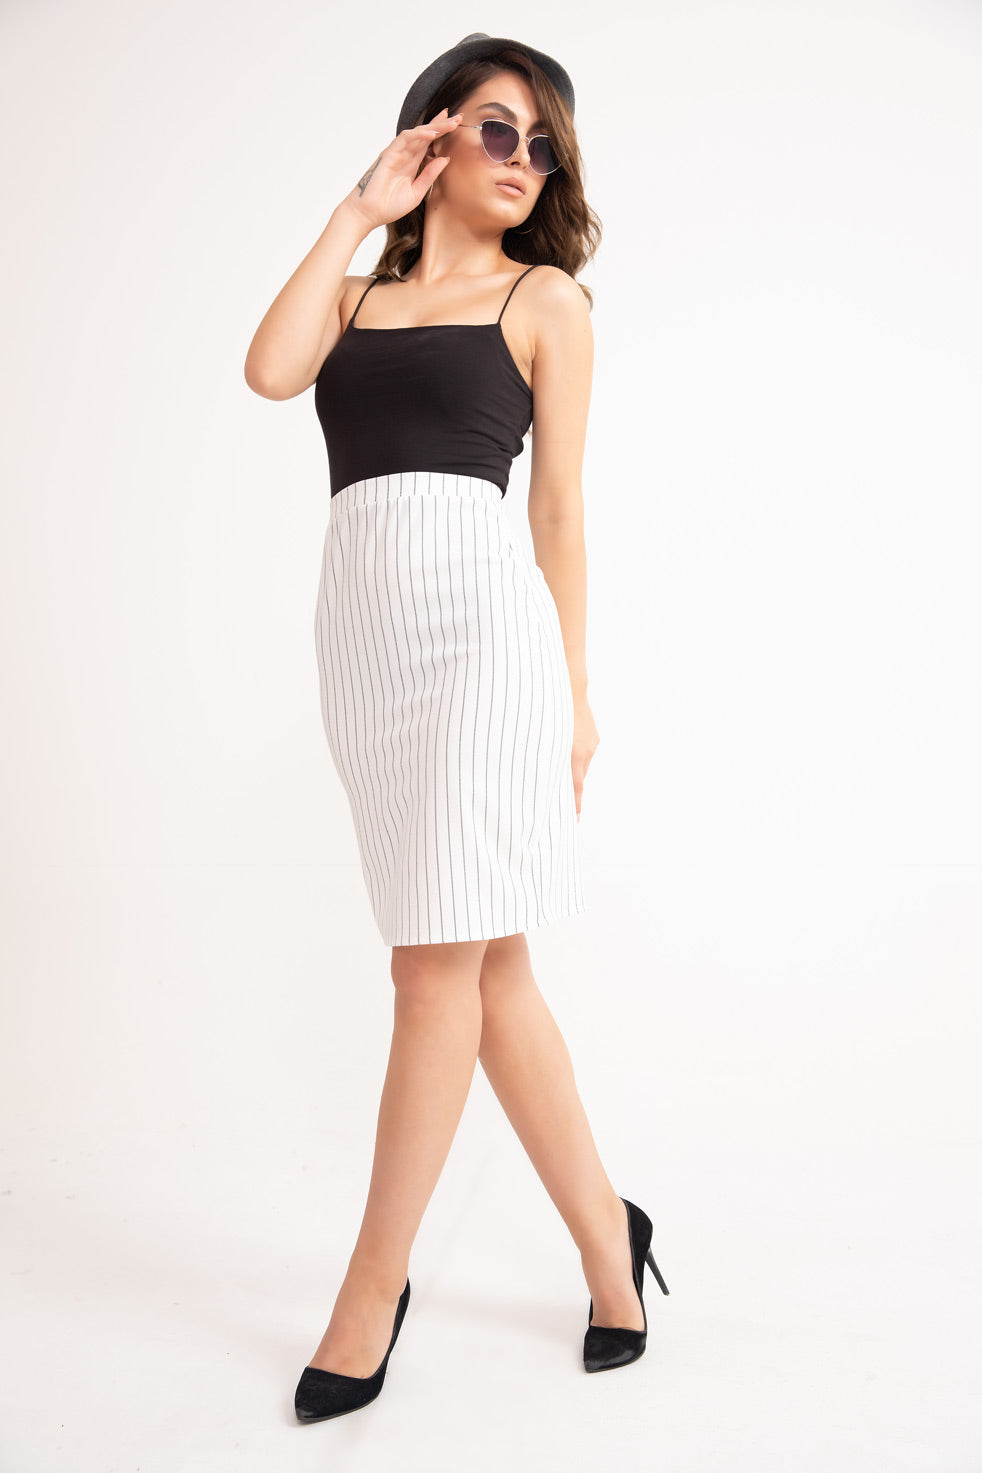 Ecru Striped Pencil Mini Skirt